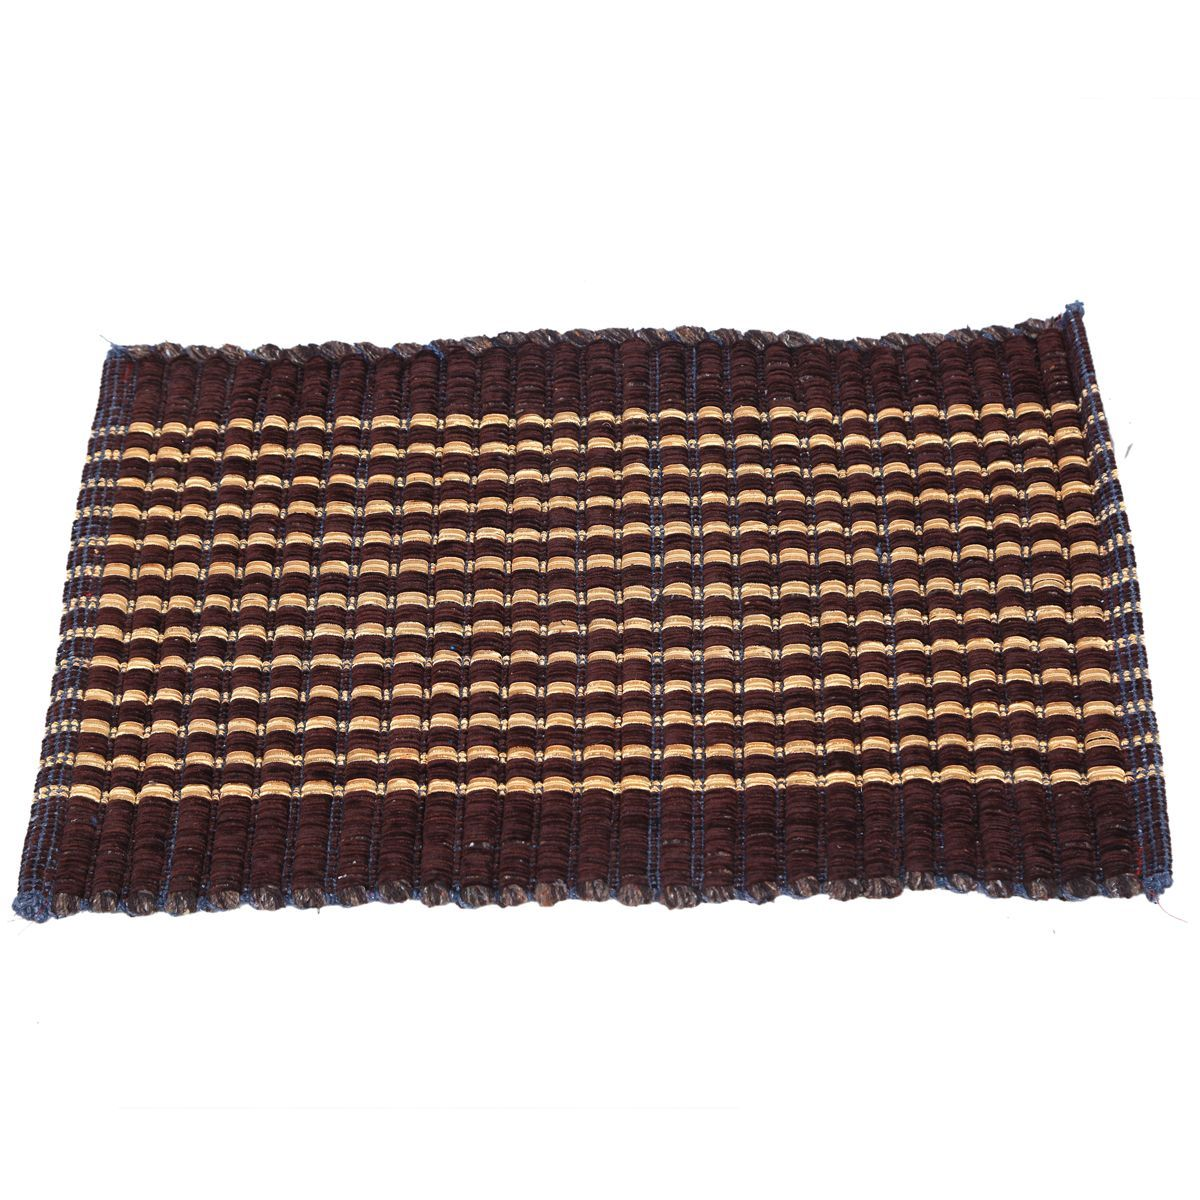 Kuber Industries™ Hand Crafted Style Cotton Blend Door Mat Set of 4 Pcs (Size-60*38 Cm)